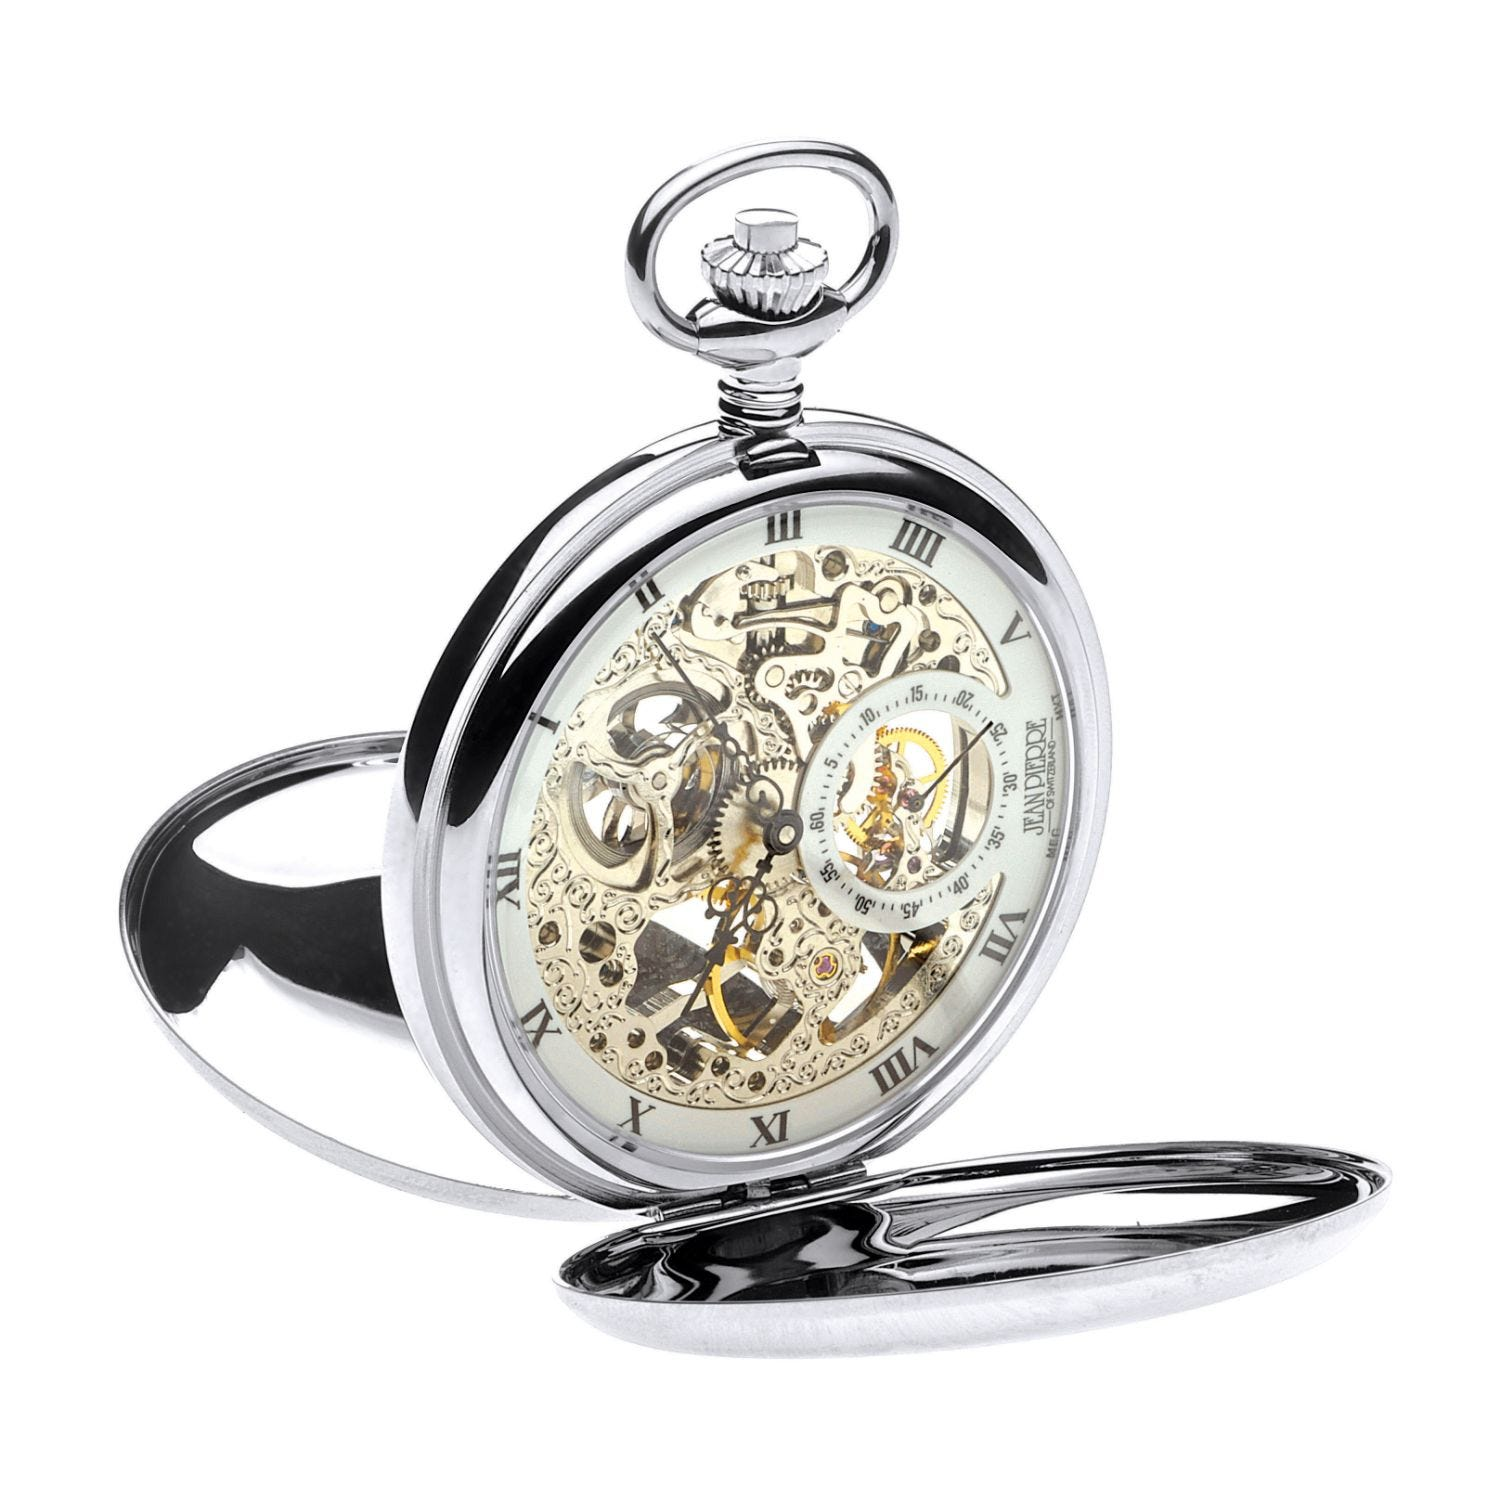 Jean Pierre chrome-plated mechanical double Hunter pocket watch